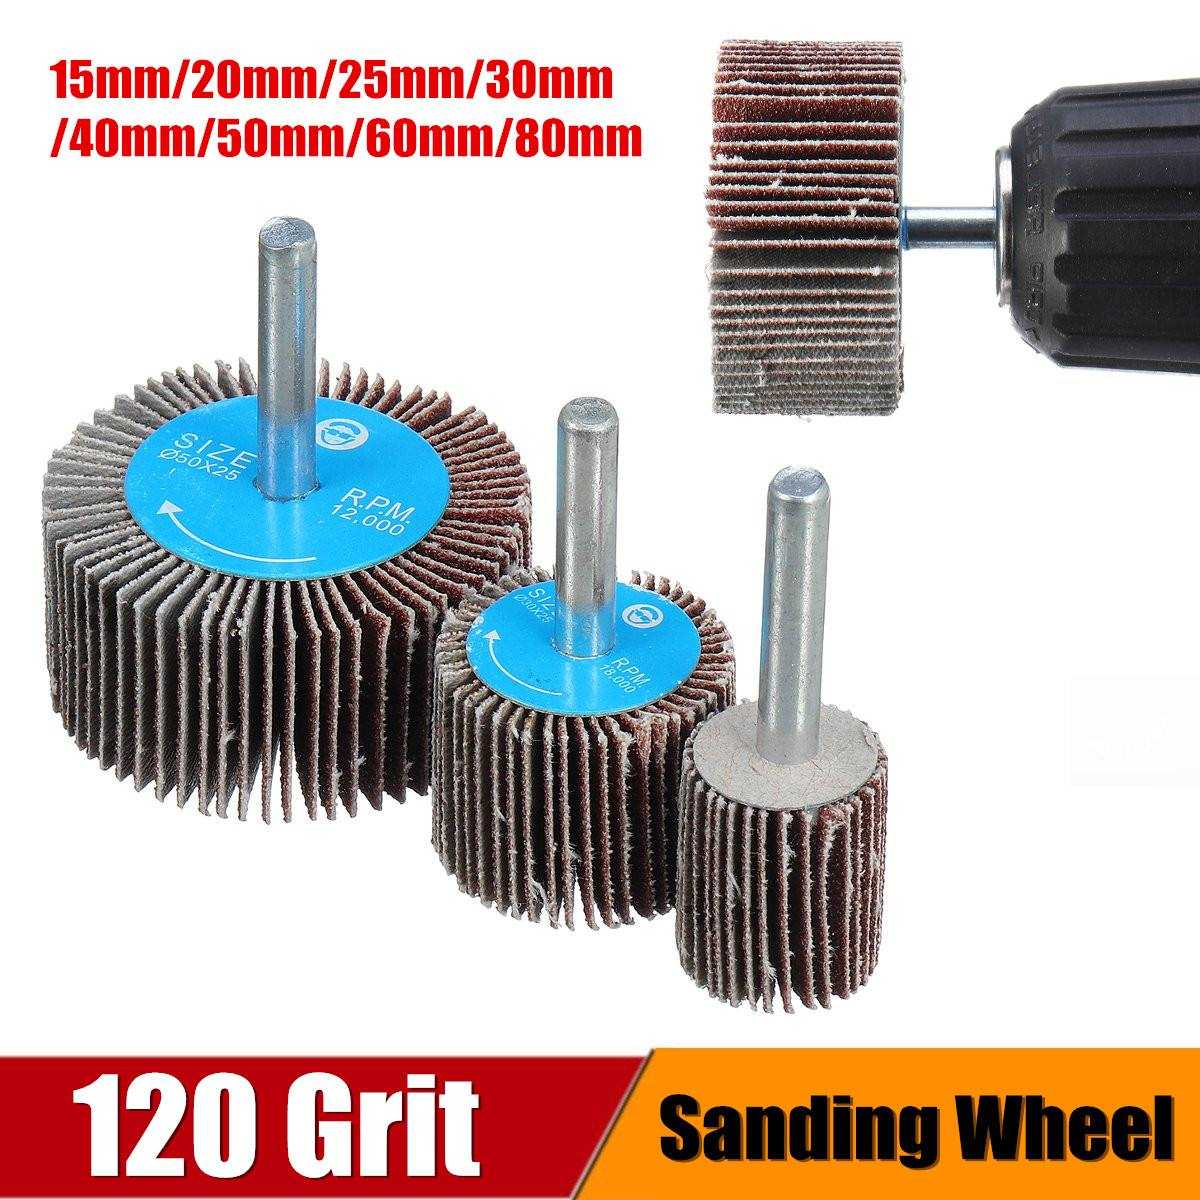 120 Grit Sanding Flap Wheel 15-80mm Sanding Flap Wheel Polishing Grinding Rotary Drill Tool Disc Grit Sandpaper Rotary Accessory